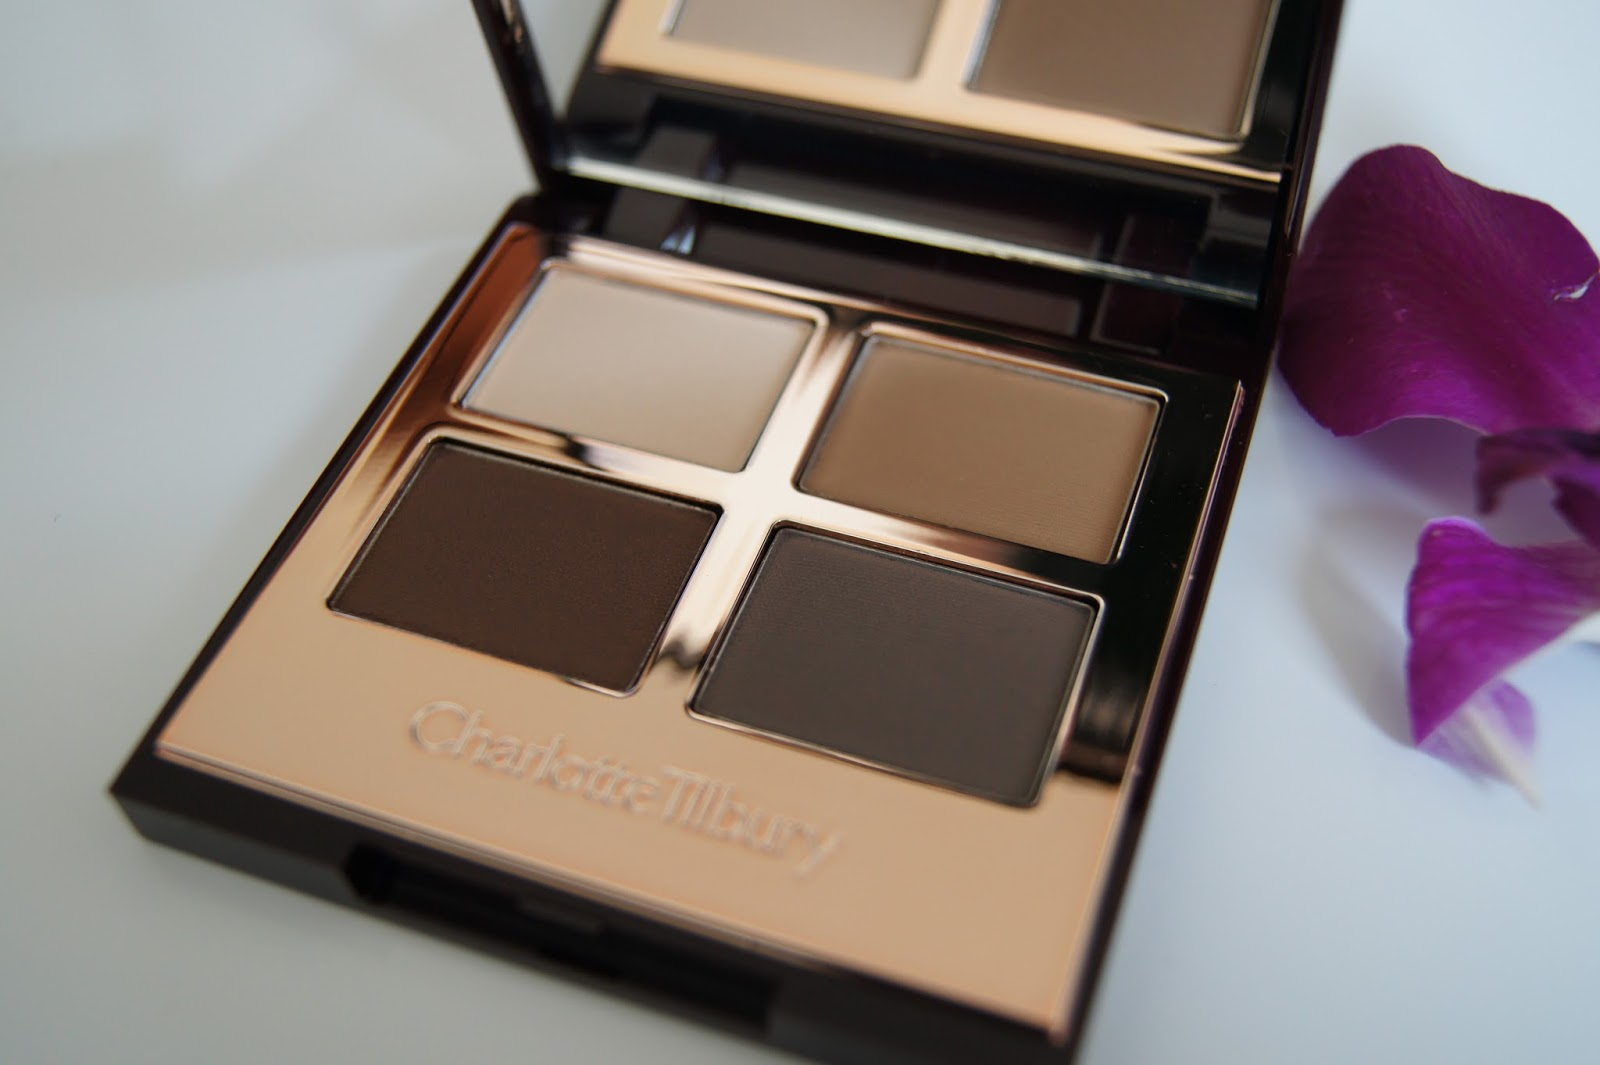 Charlotte Tilbury Luxury Palette-The Sophisticate review